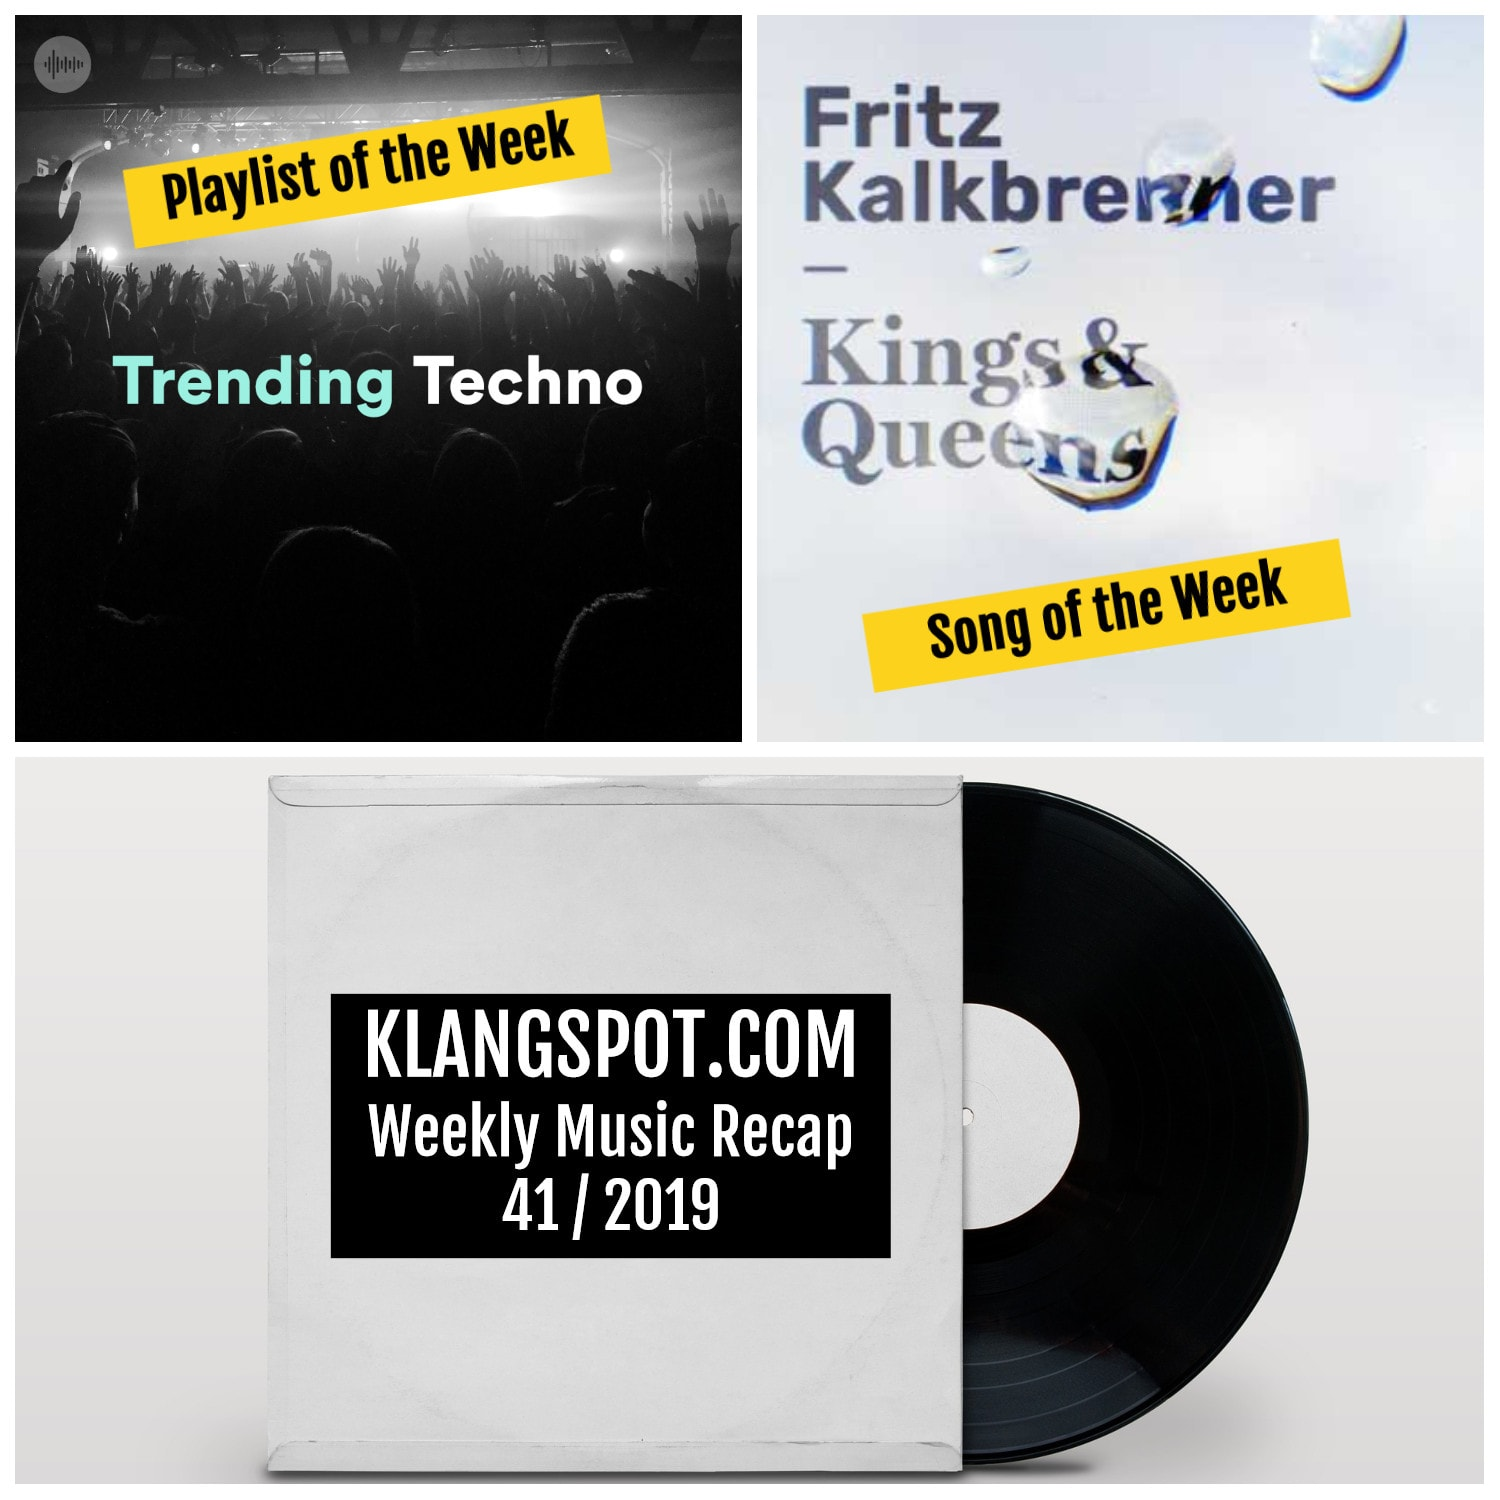 Weekly Music Recap 41/2019: Trending Techno / Fritz Kalkbrenner - 'Kings & Queens'